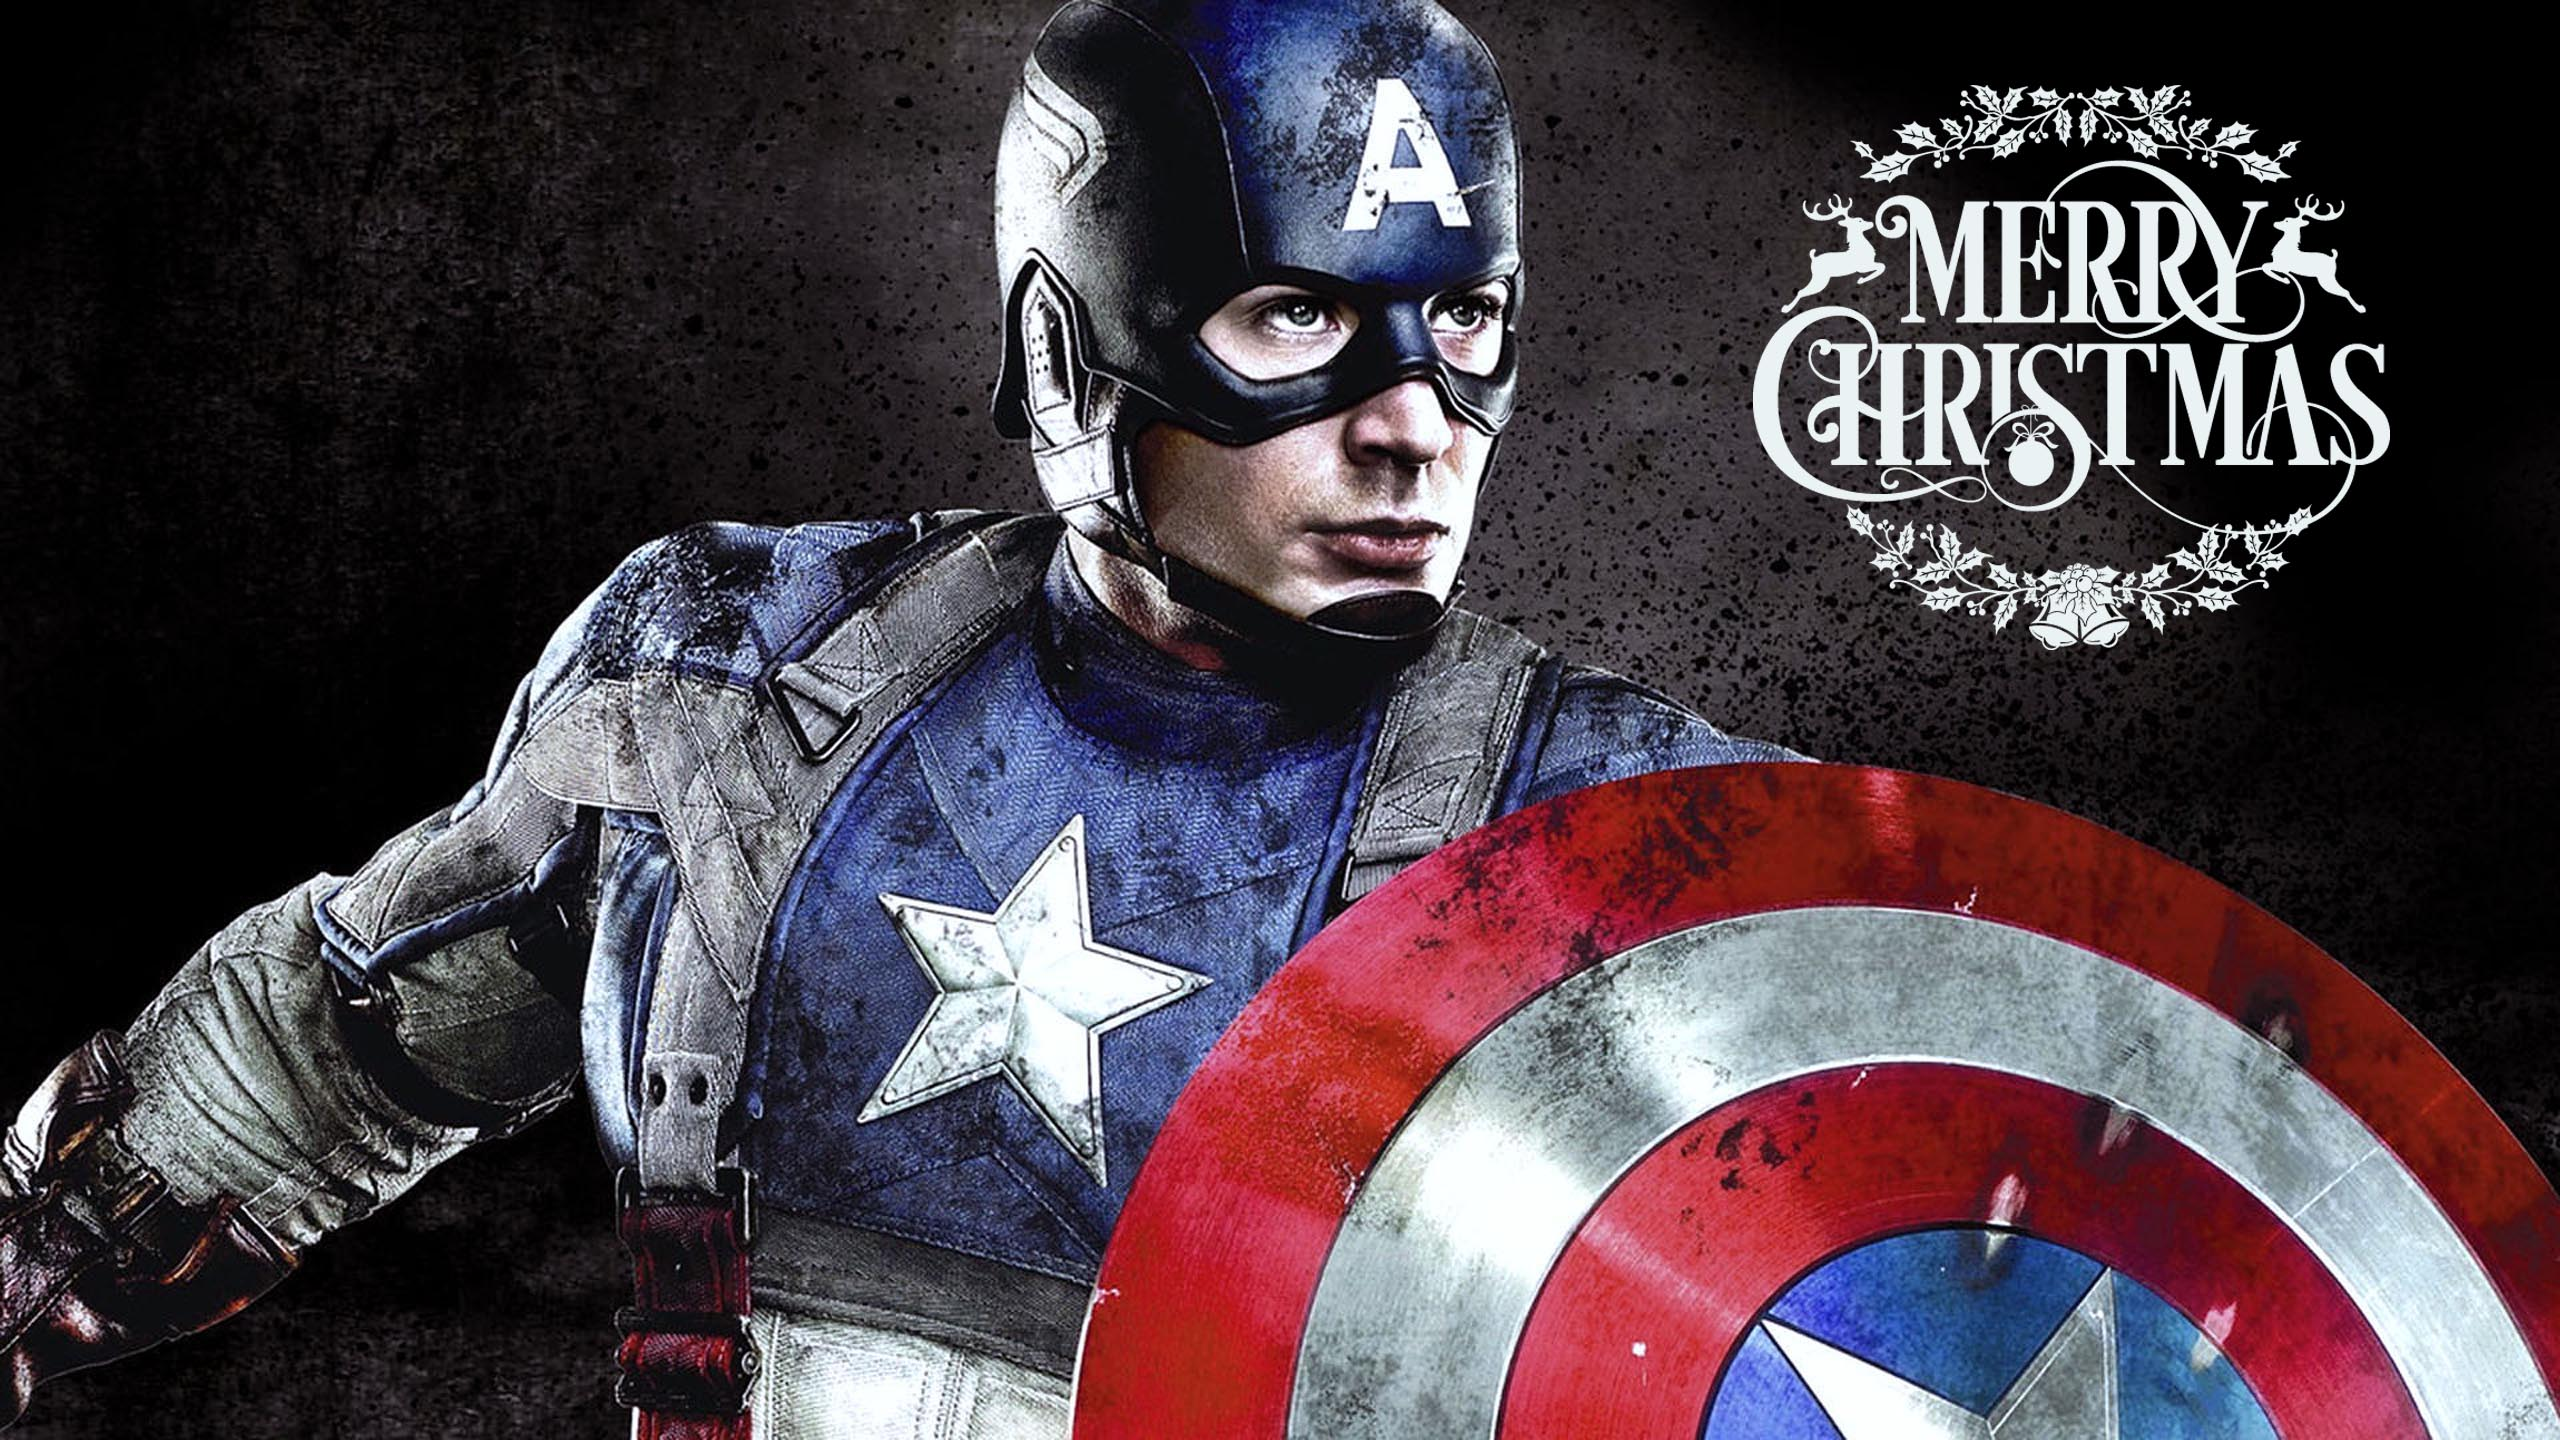 happy merry christmas greetings super hero captain america kids hd wallpaper